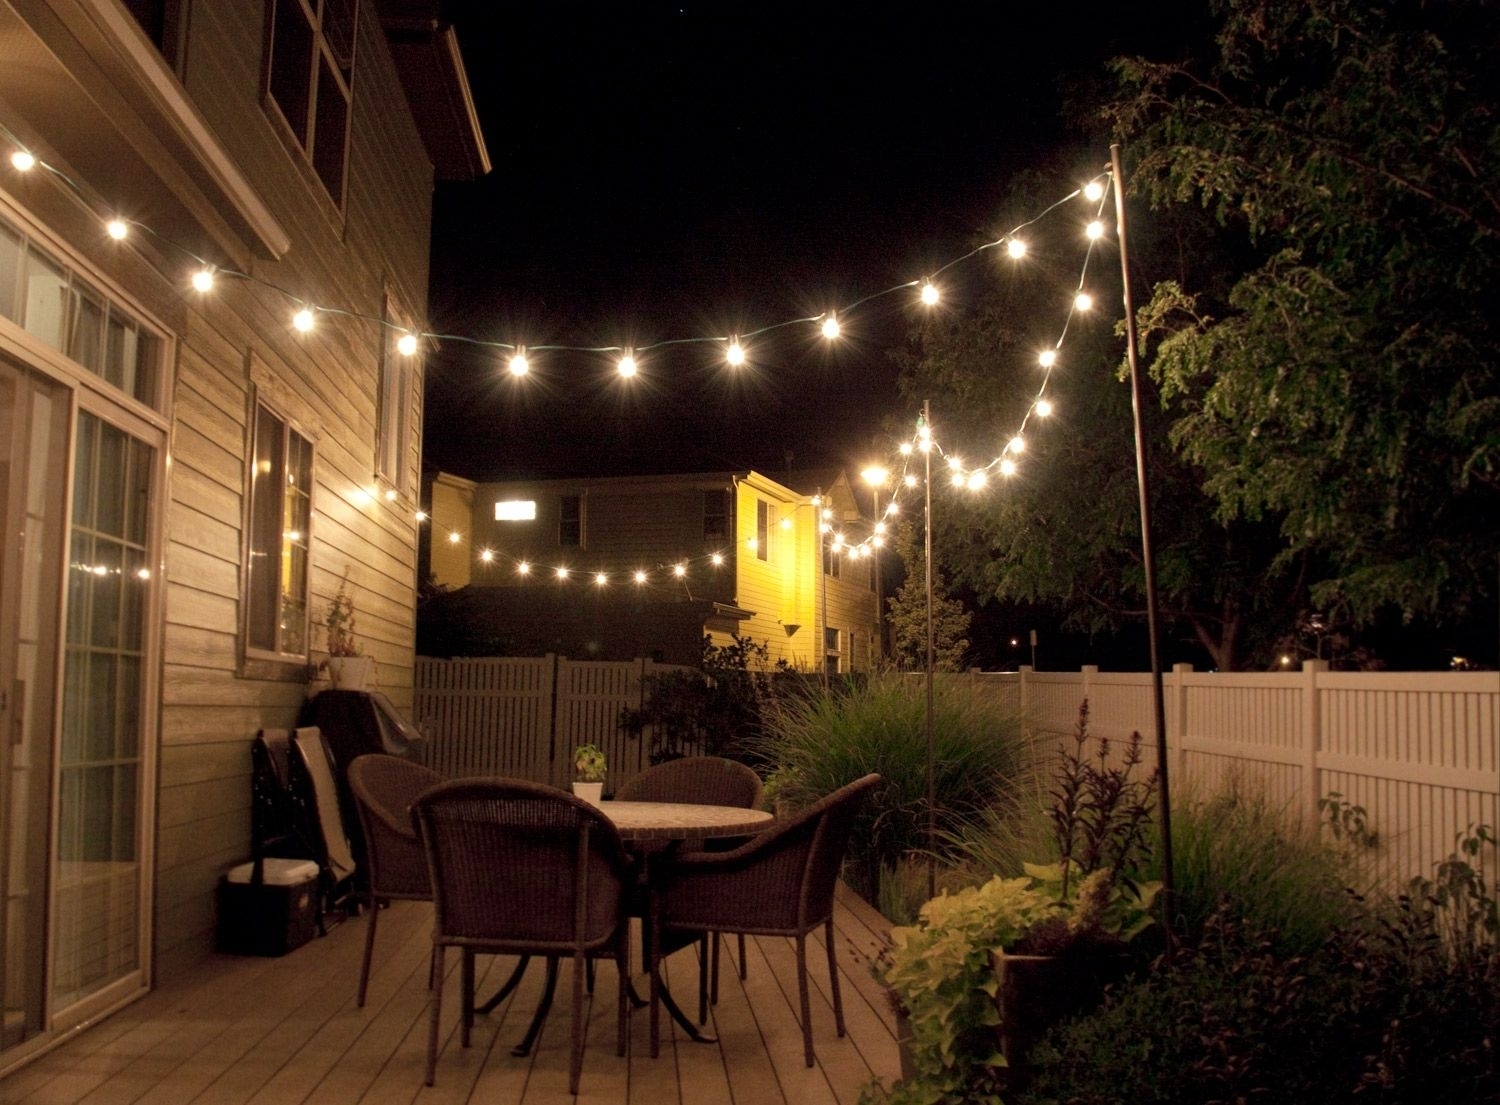 How To Make Inexpensive Poles To Hang String Lights On – Café Style In Outdoor Hanging Lights On String (#6 of 15)